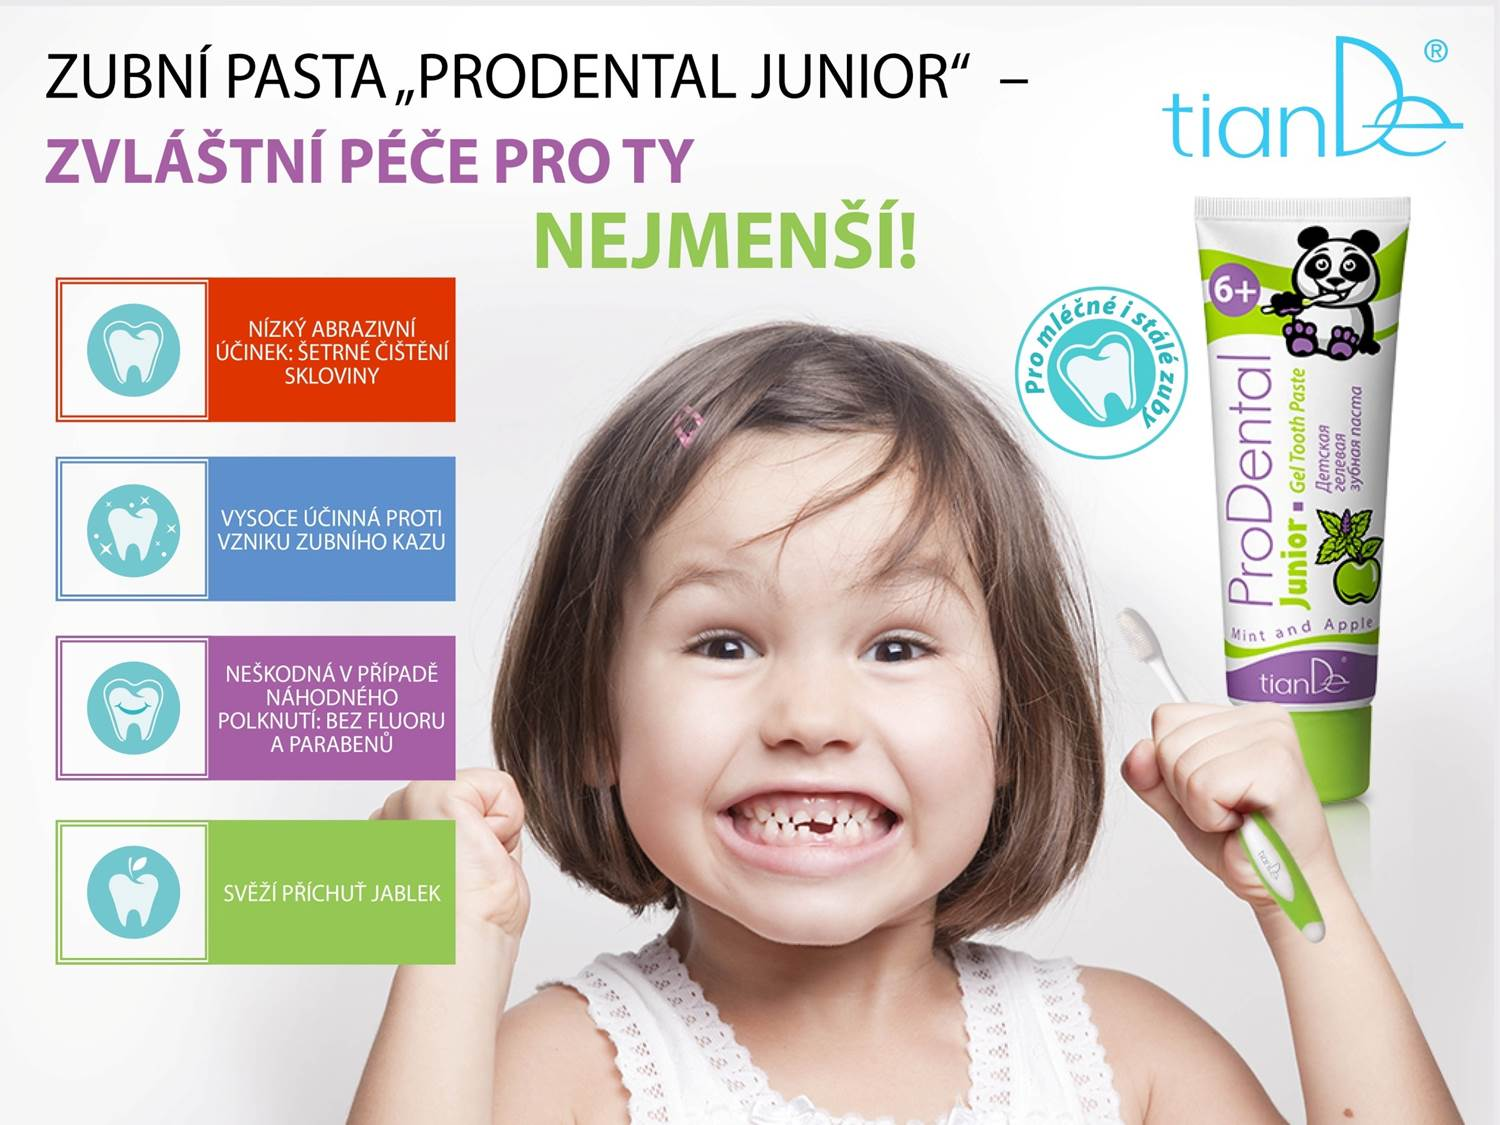 Prodental Junior